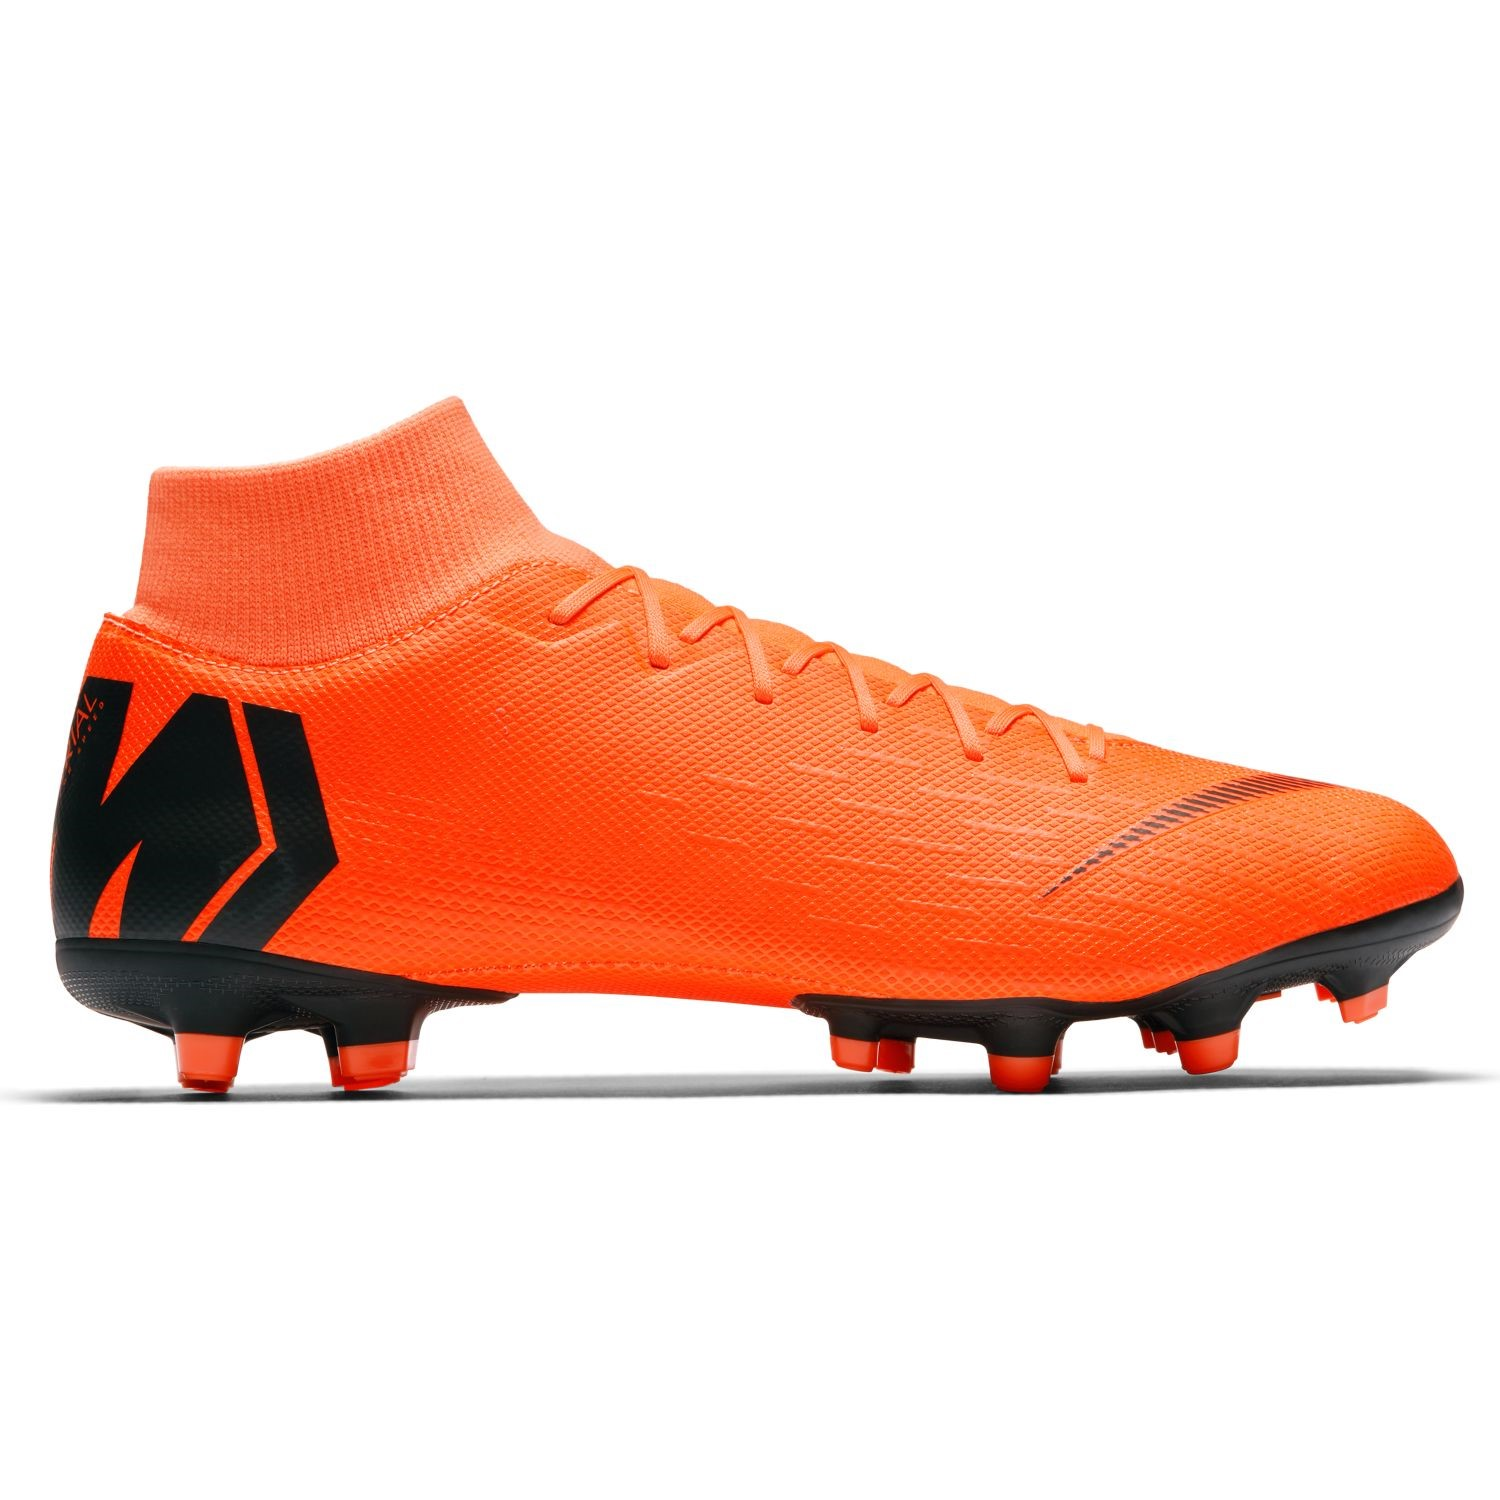 662ad4740 Nike Mercurial Superfly VI Academy MG - Mens Football Boots - Total  Orange Black